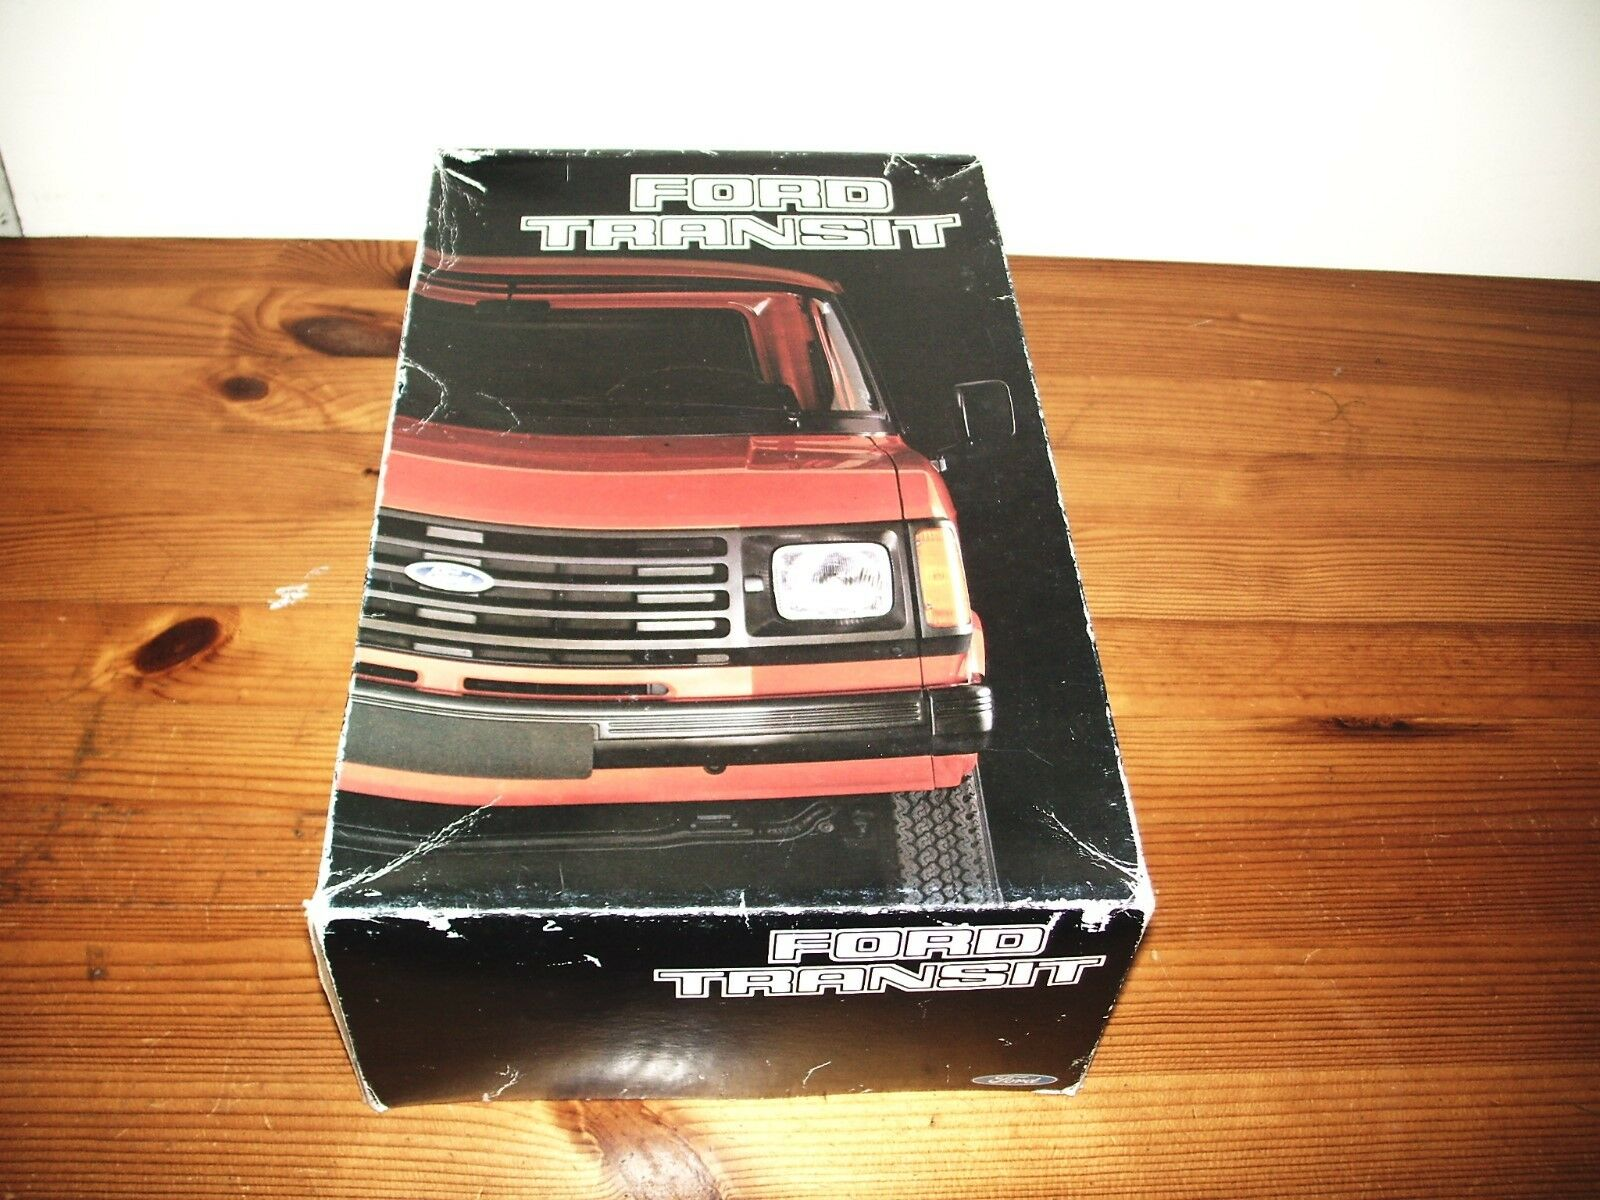 ESCI 1 24 FORD TRANSIT VAN MODEL KIT - 1984